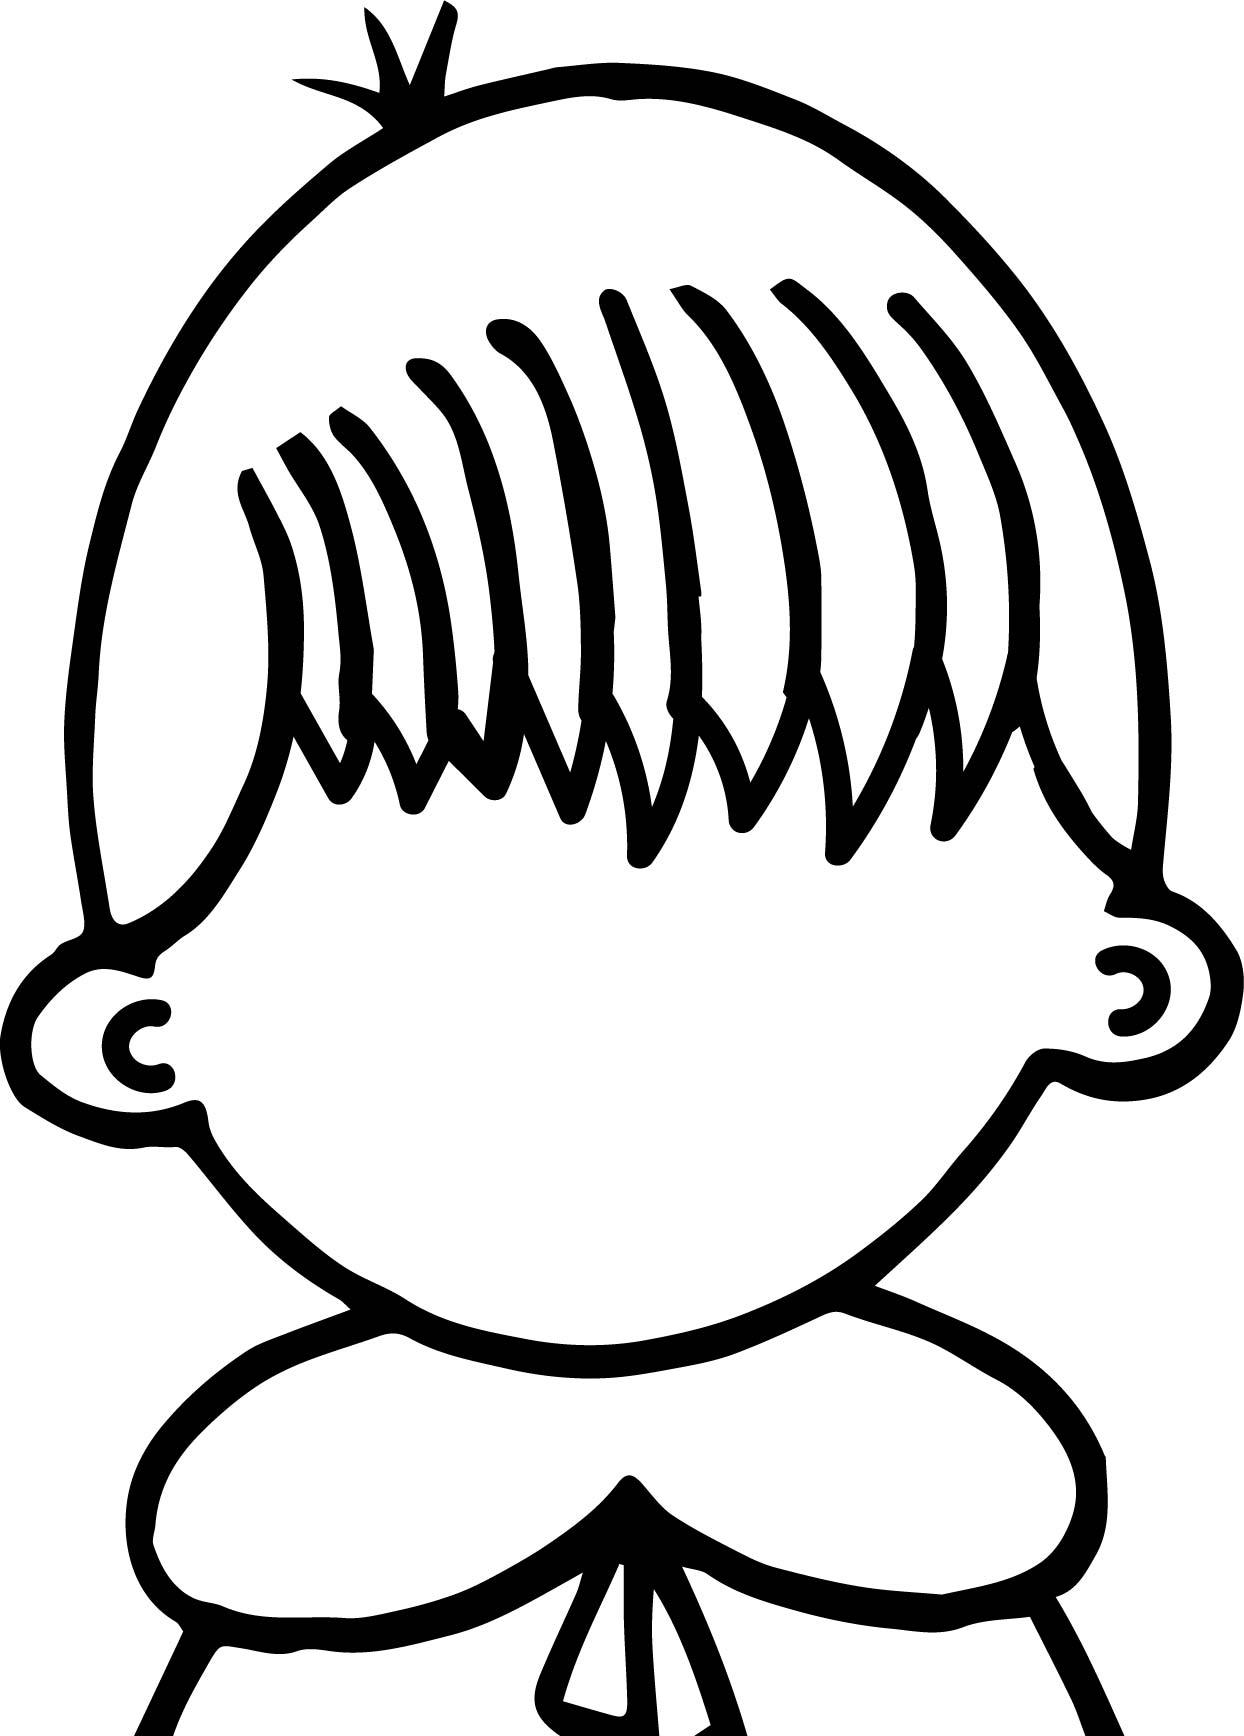 Create Our Face Children Coloring Page | Wecoloringpage.com